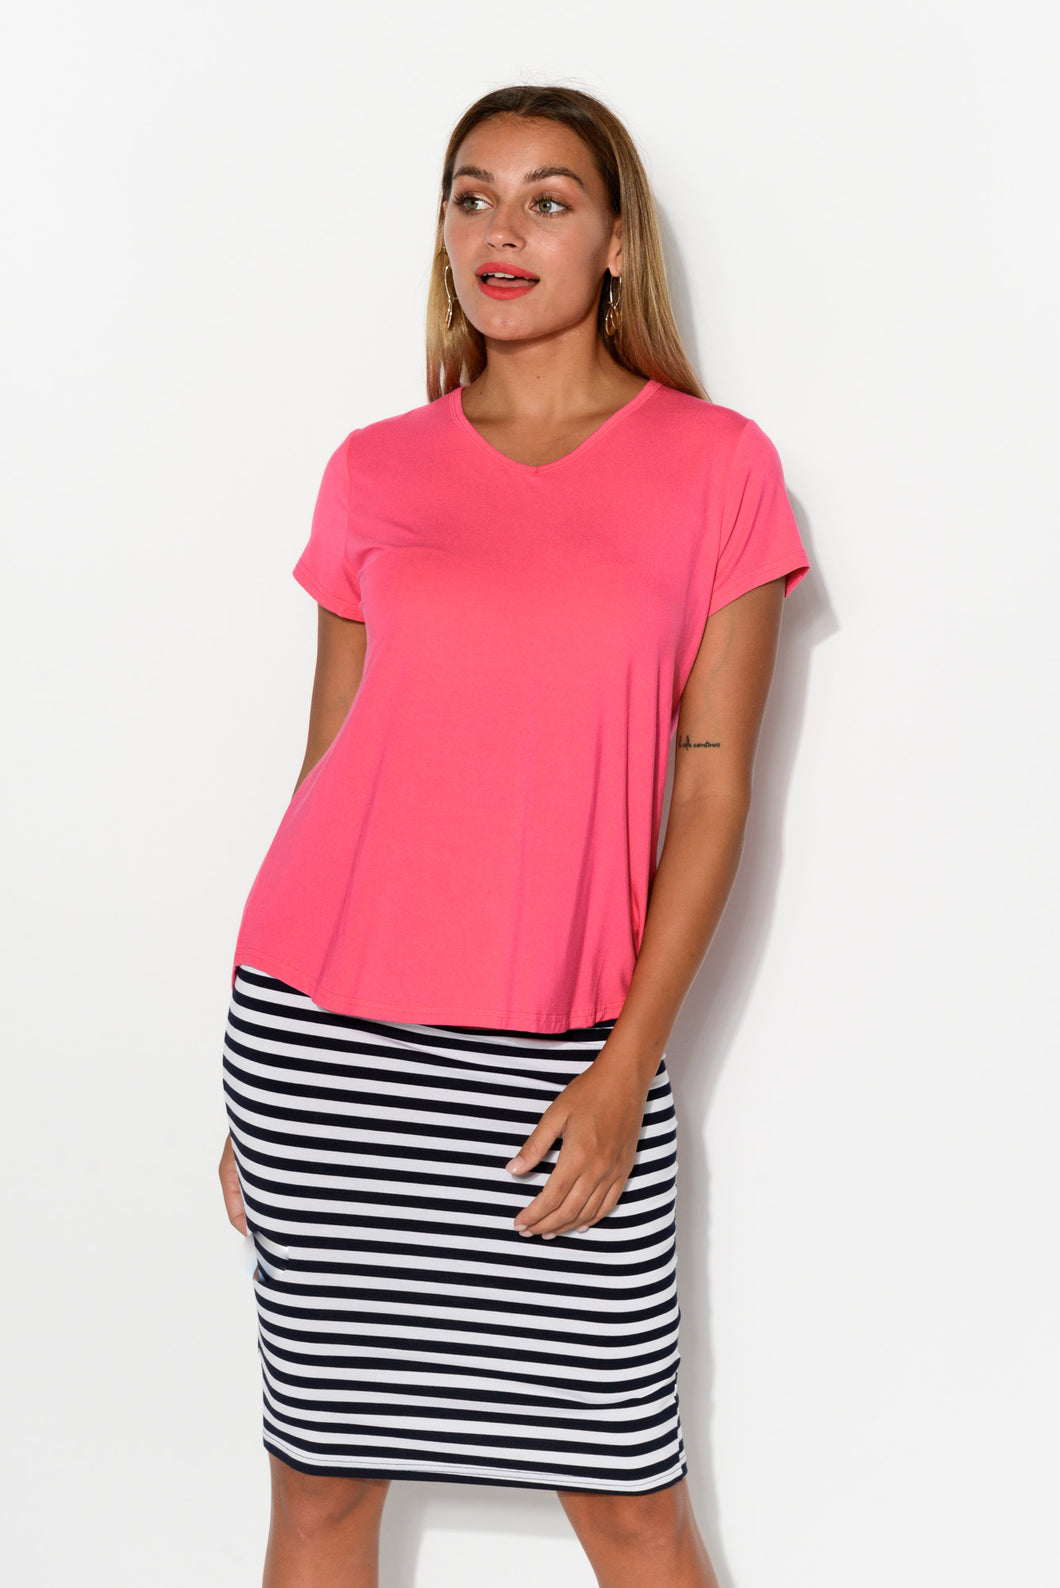 Paige Pink Bamboo Tee - Blue Bungalow